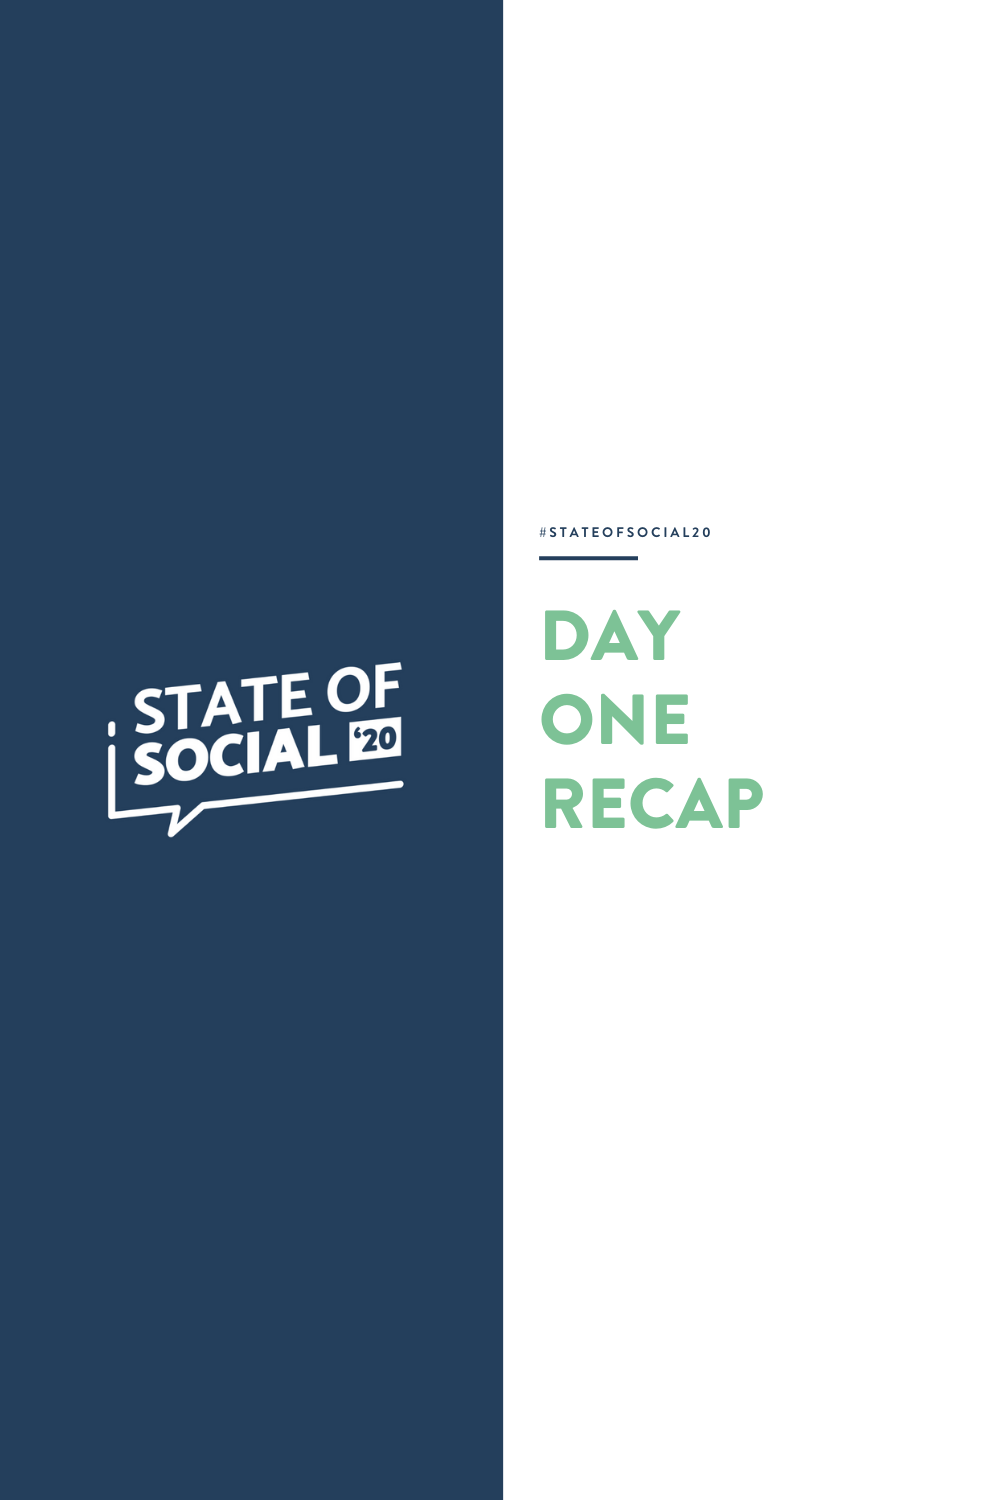 State of Social '20: Day 1 Recap